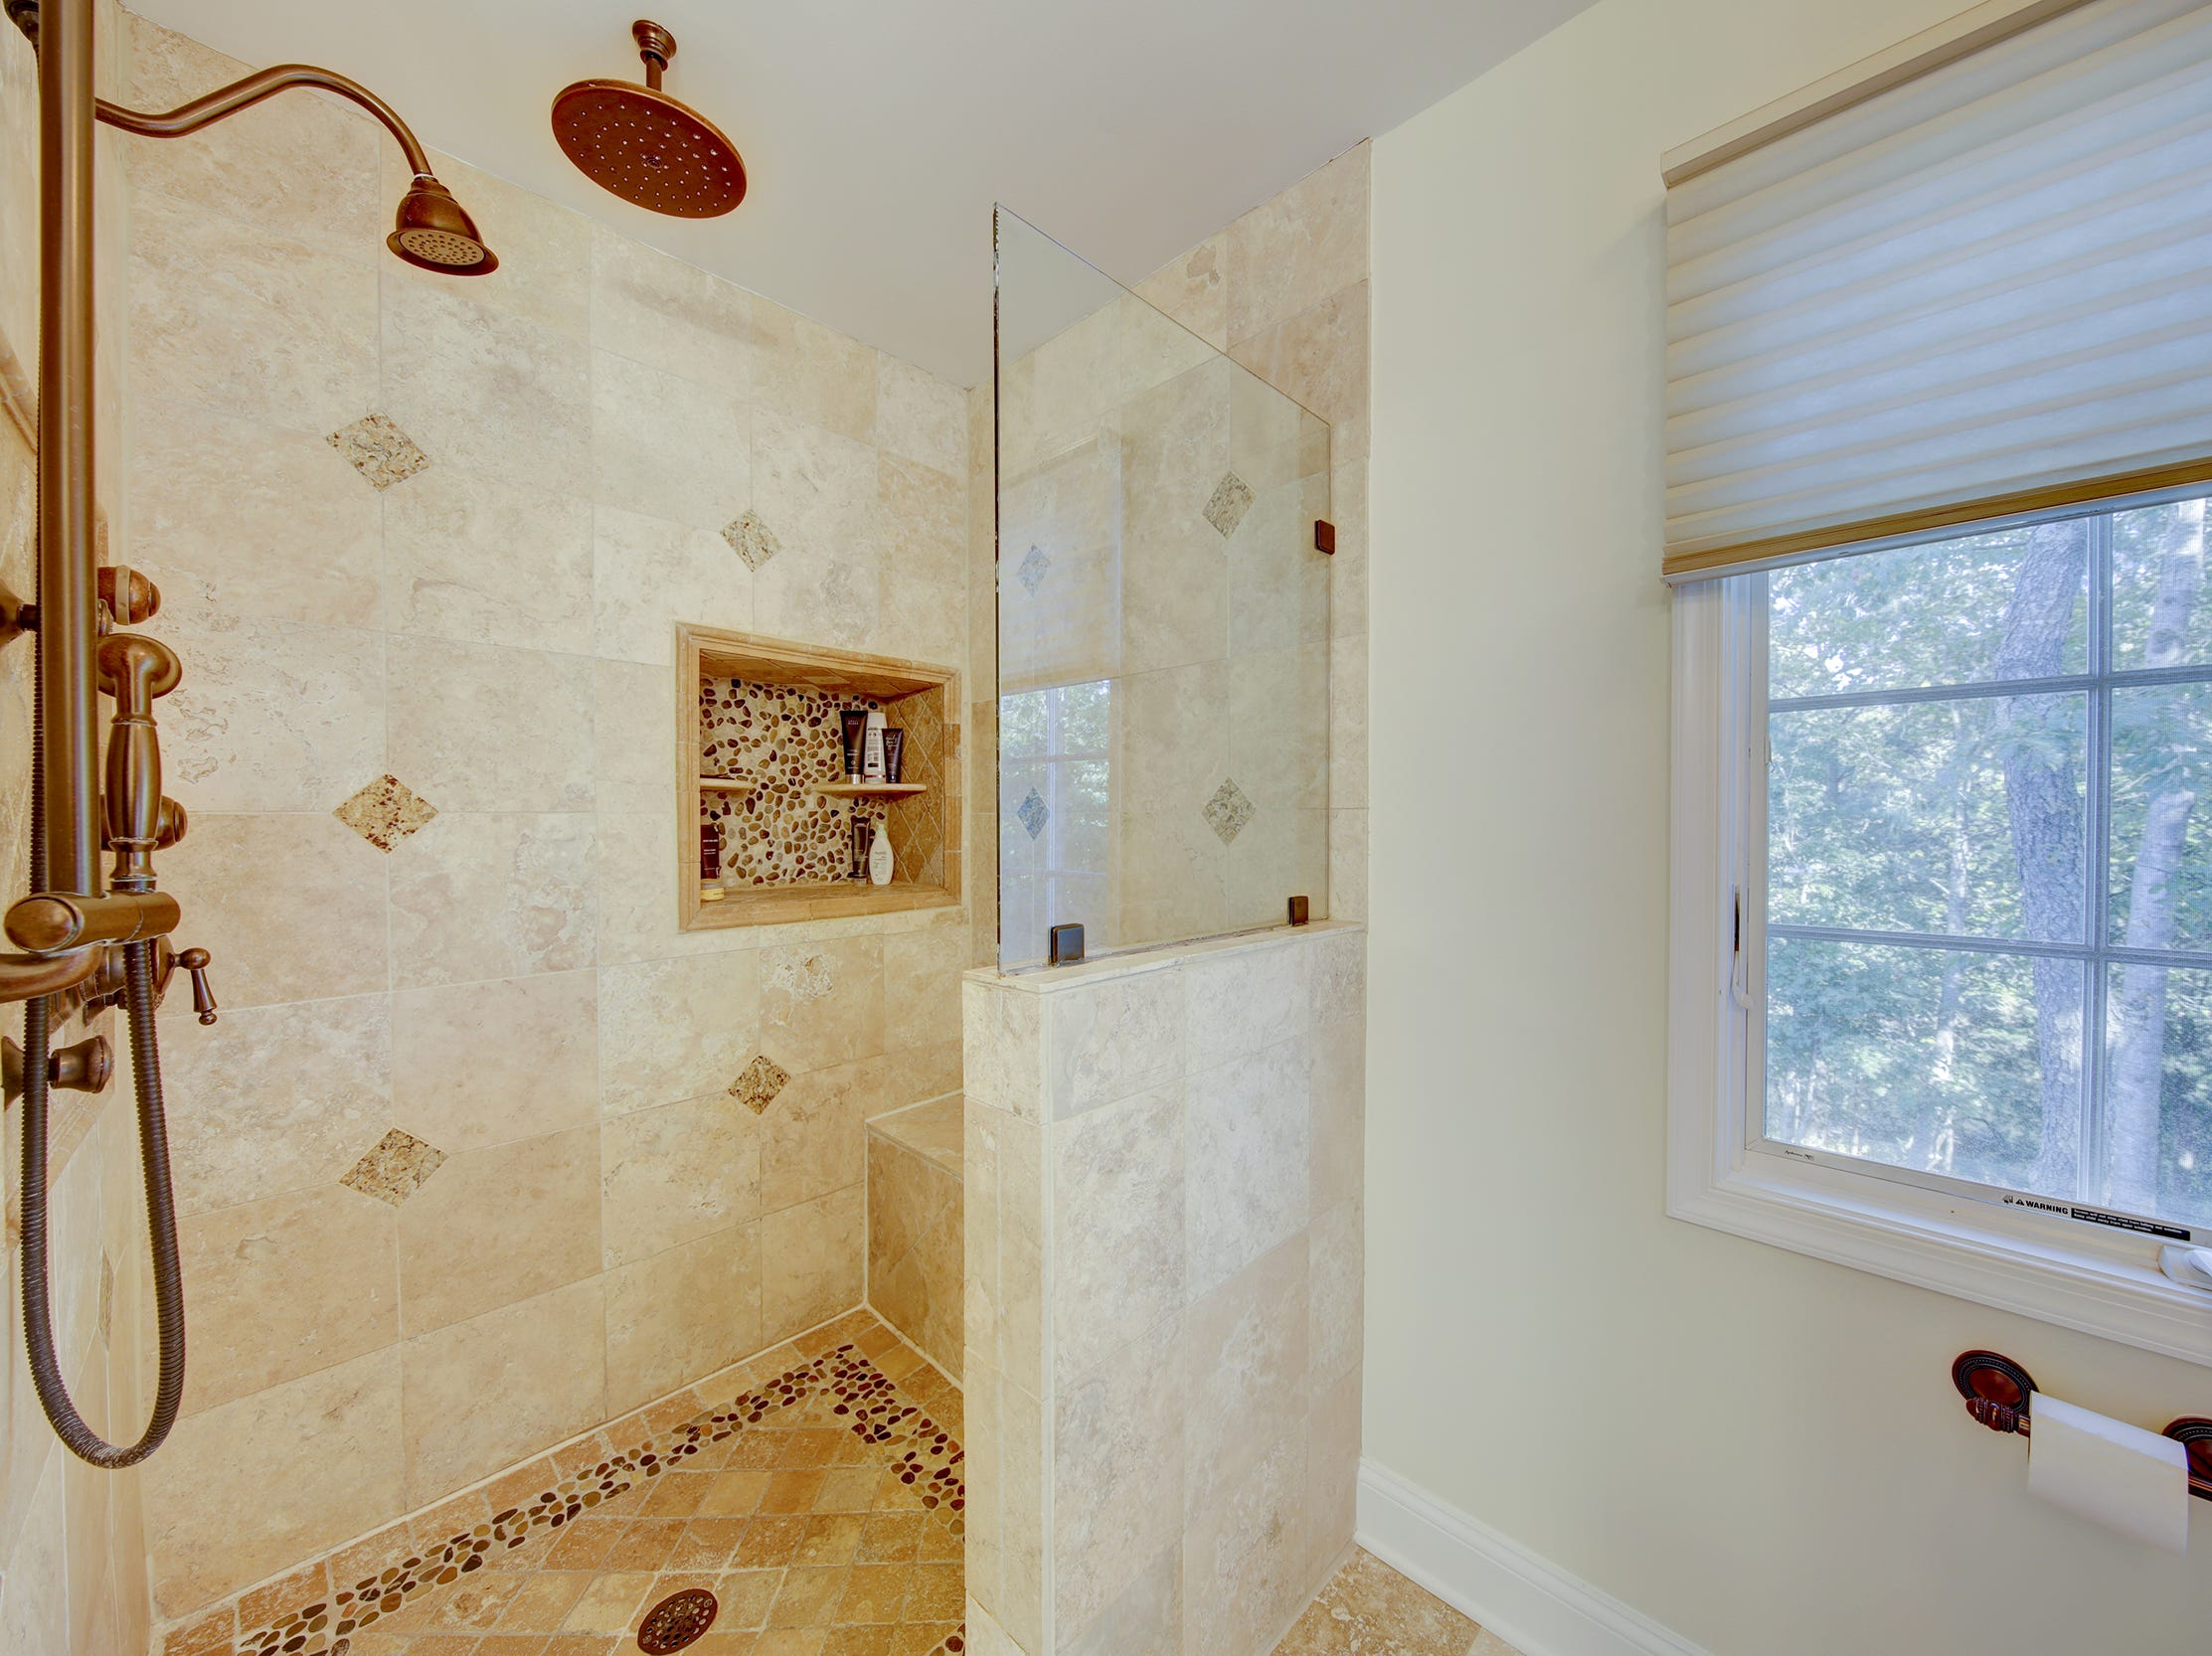 This bath at 204 Lakeview Shores in Rehoboth Beach has a rain head and custom tile work.